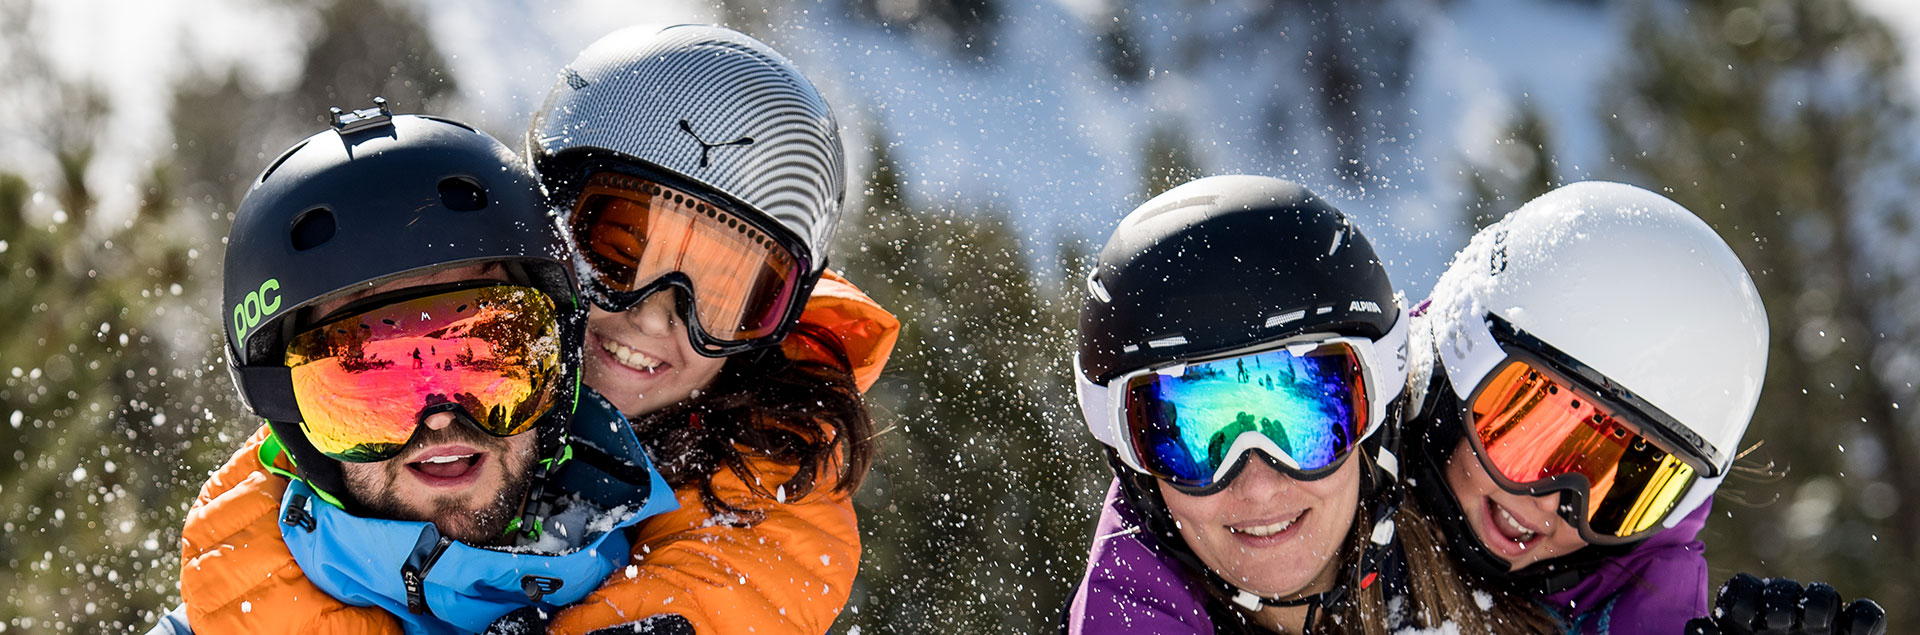 family winter holidays grandvalira soldeu hotel